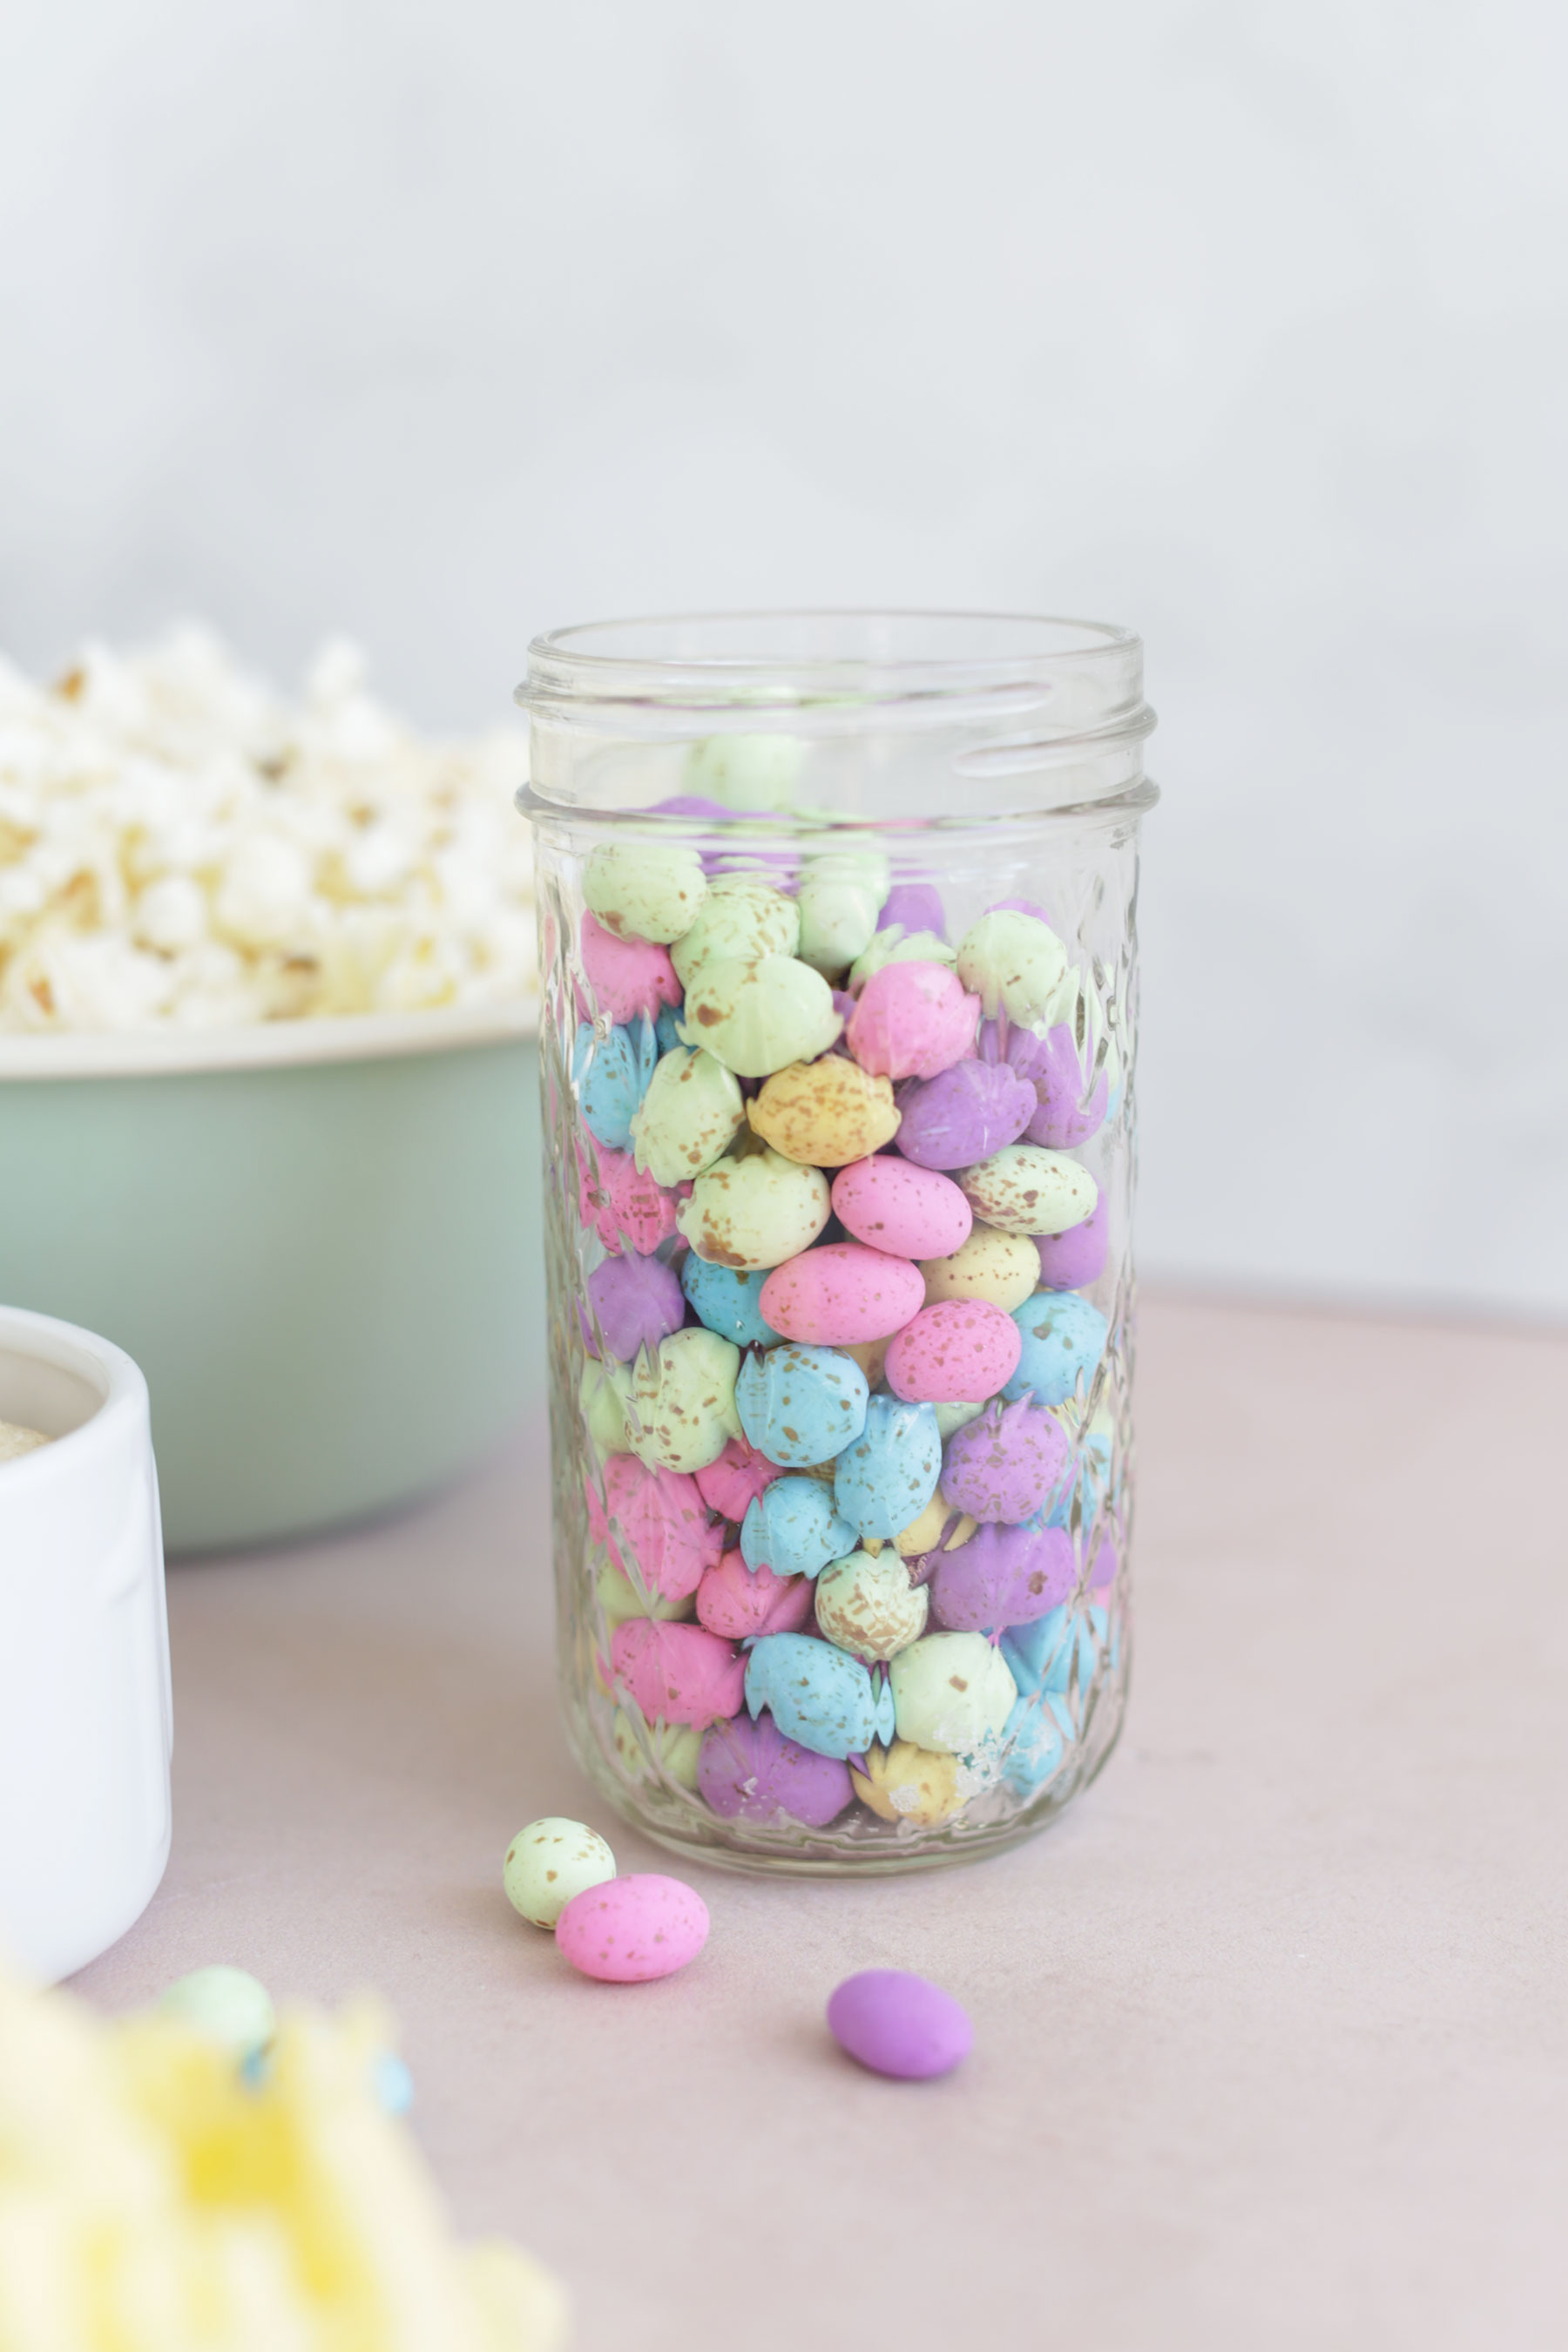 Caramel-Popcorn-with-speckled-eggs-and-sprinkles-6